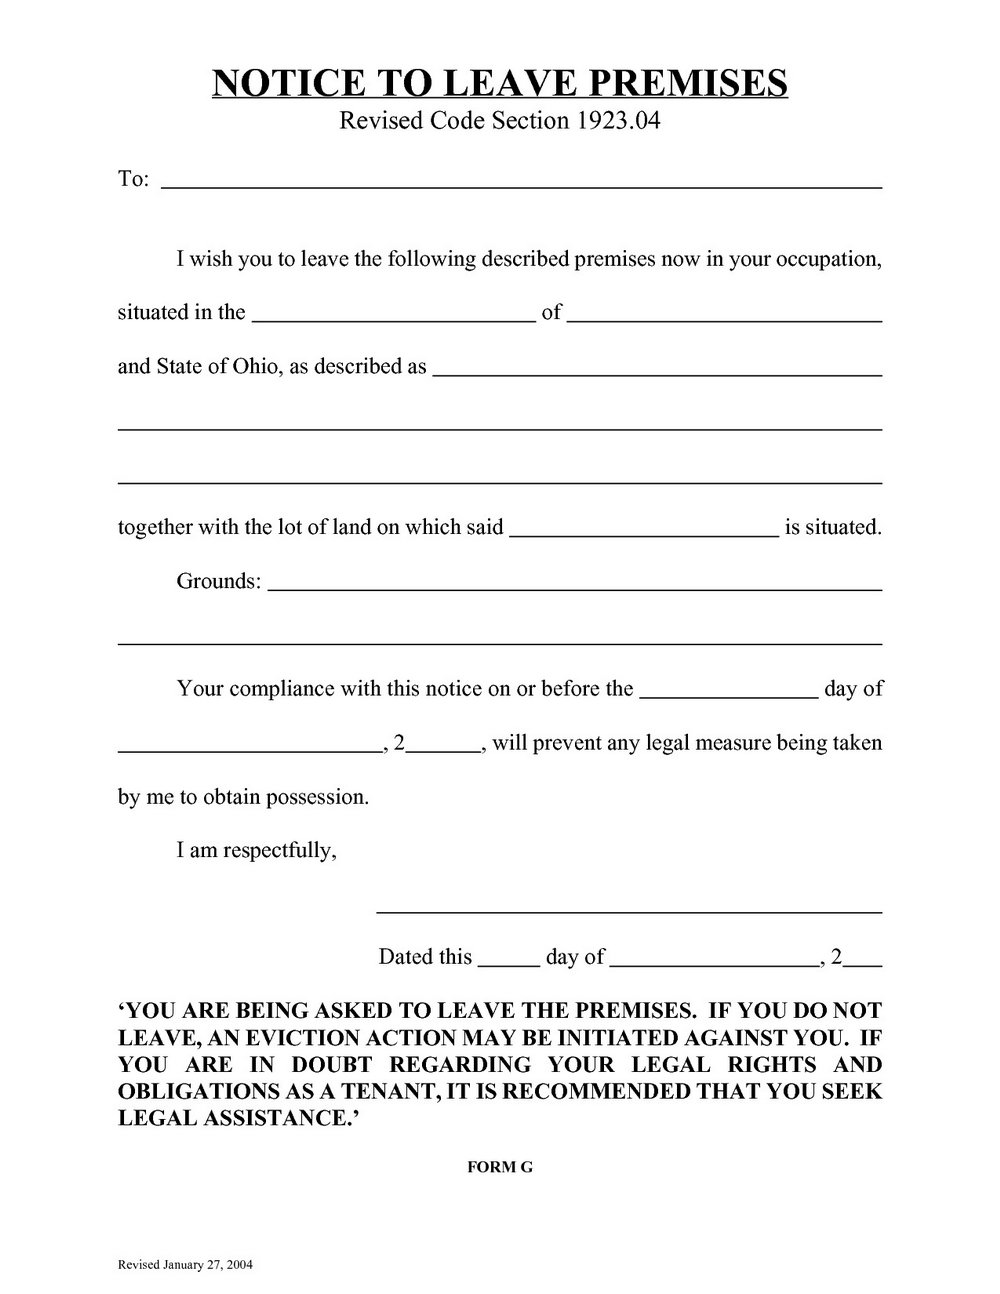 Eviction Notice Form 6a